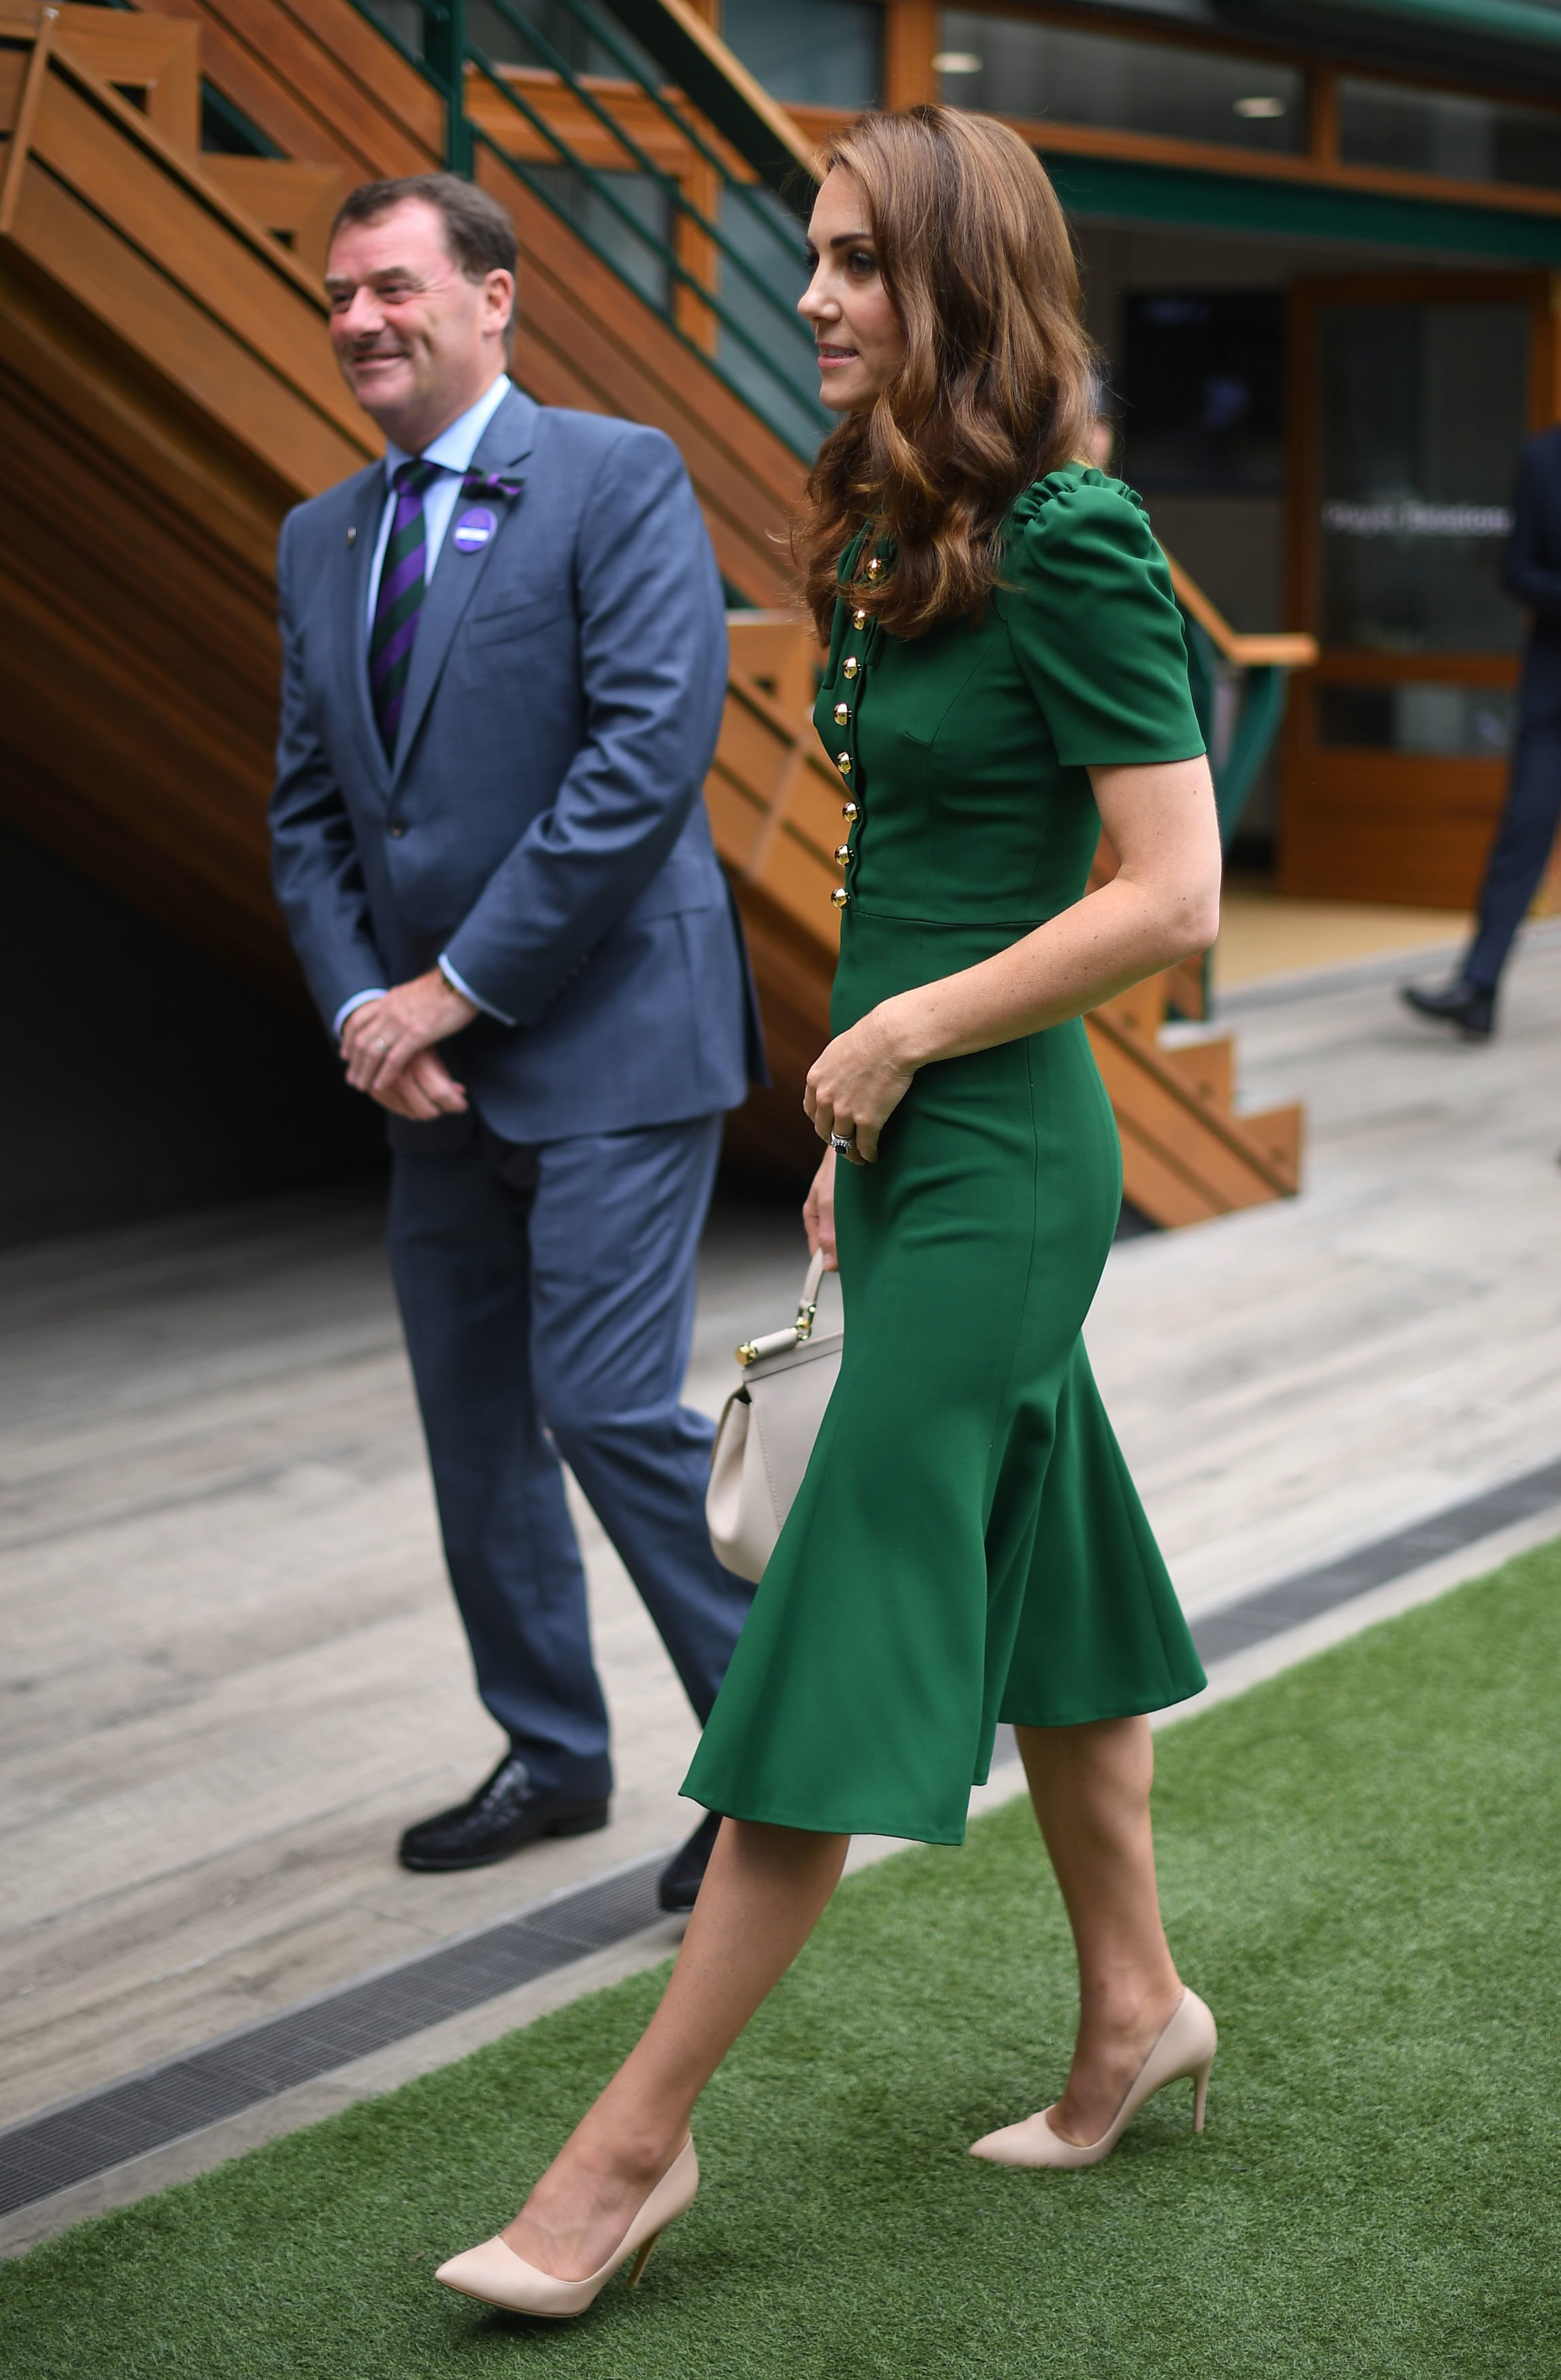 Kate Middleton, Damen-Einzel-Finale Wimbledon, 2019 | Quelle: Getty Images